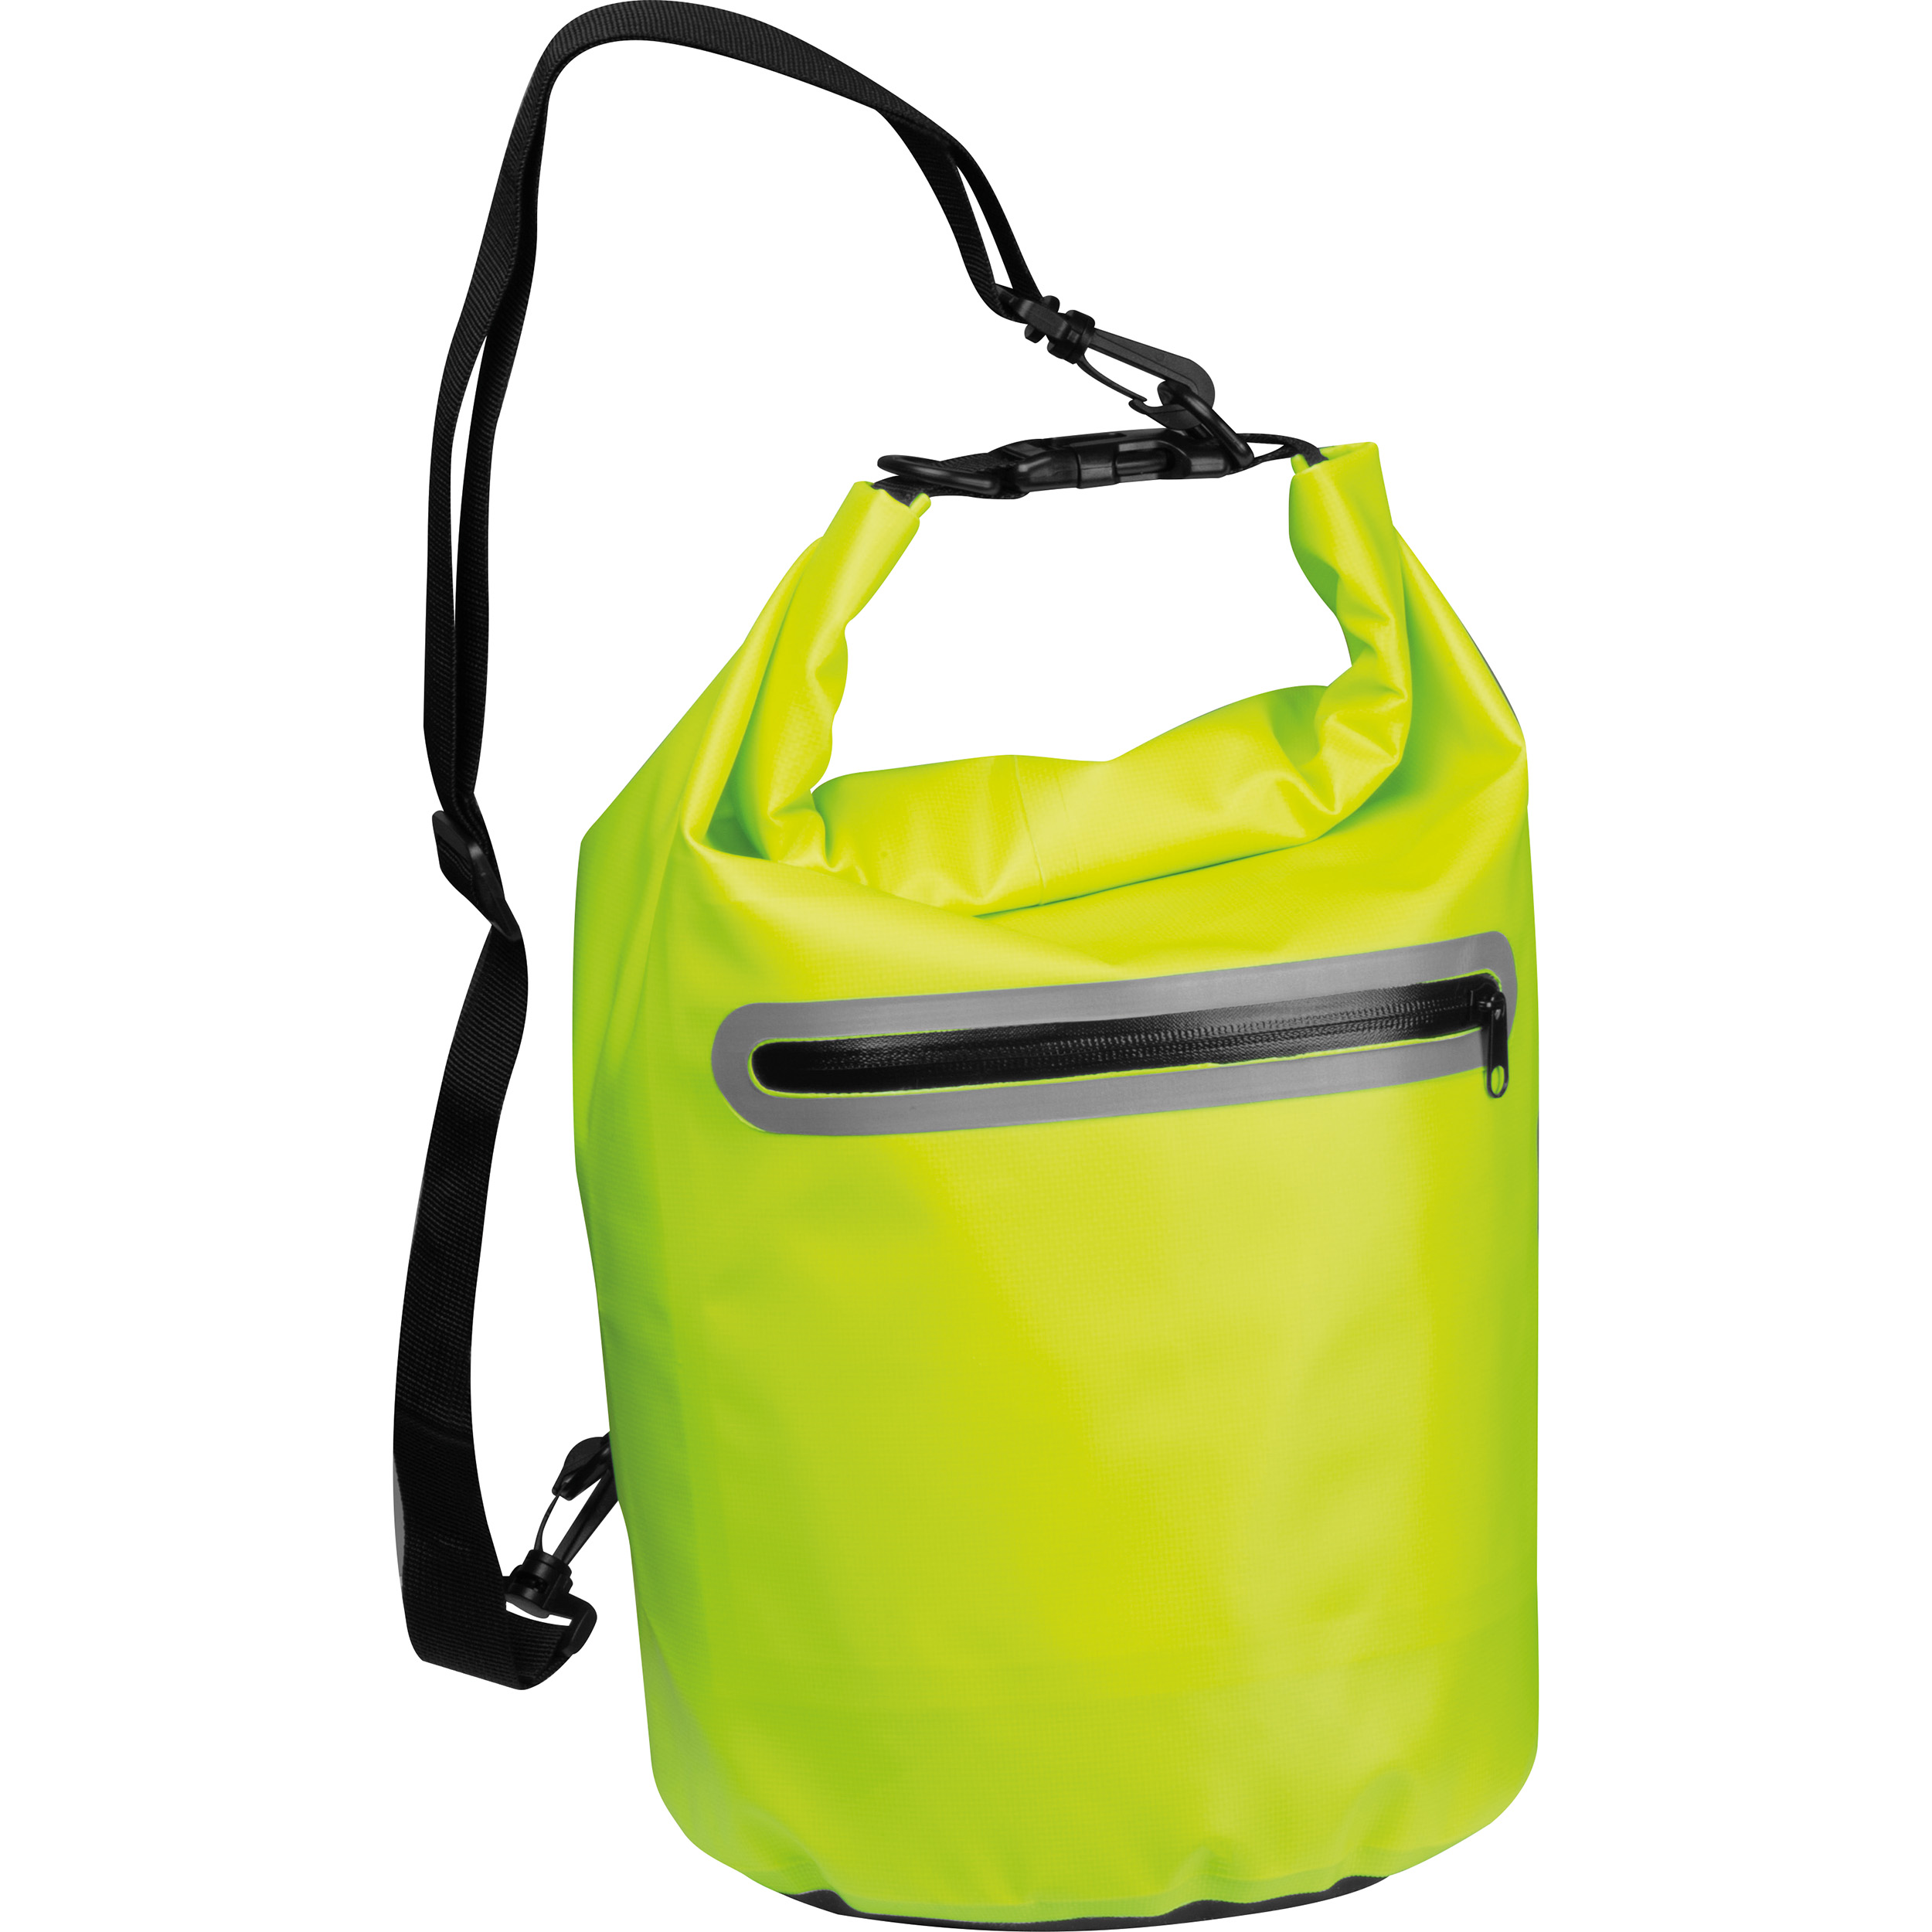 Waterproof bag with reflective stripes